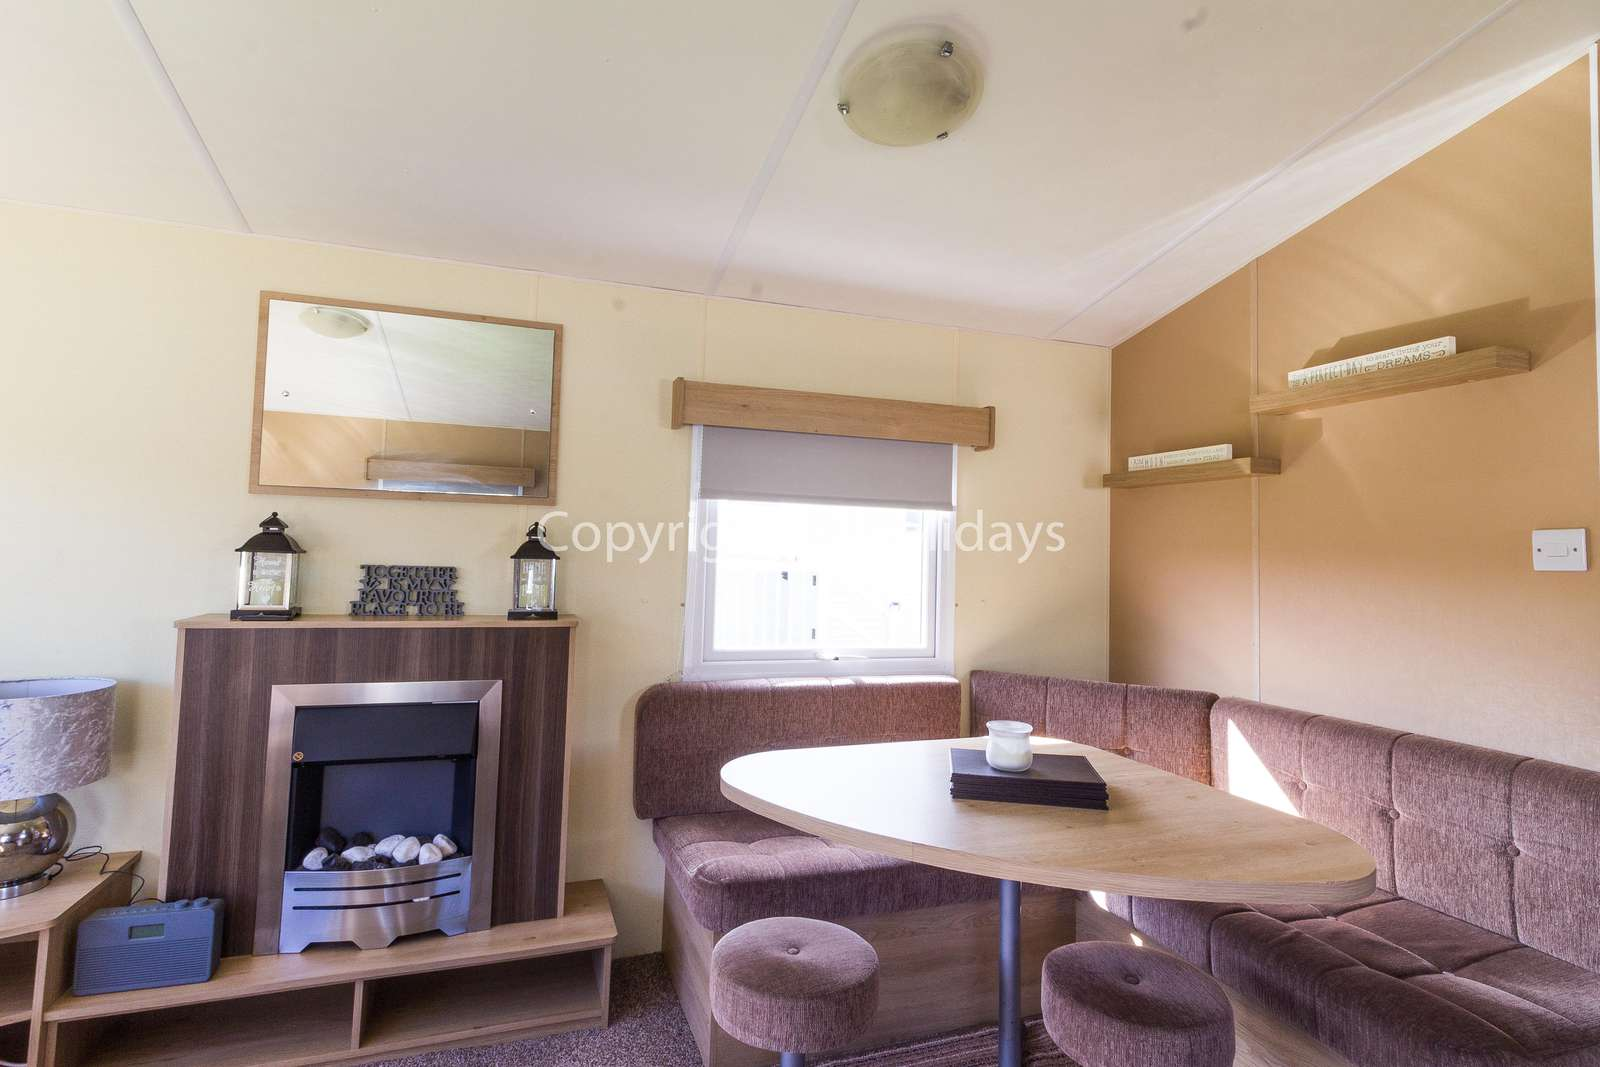 Perfect place to dine with family or friends in this self-catering accommodation